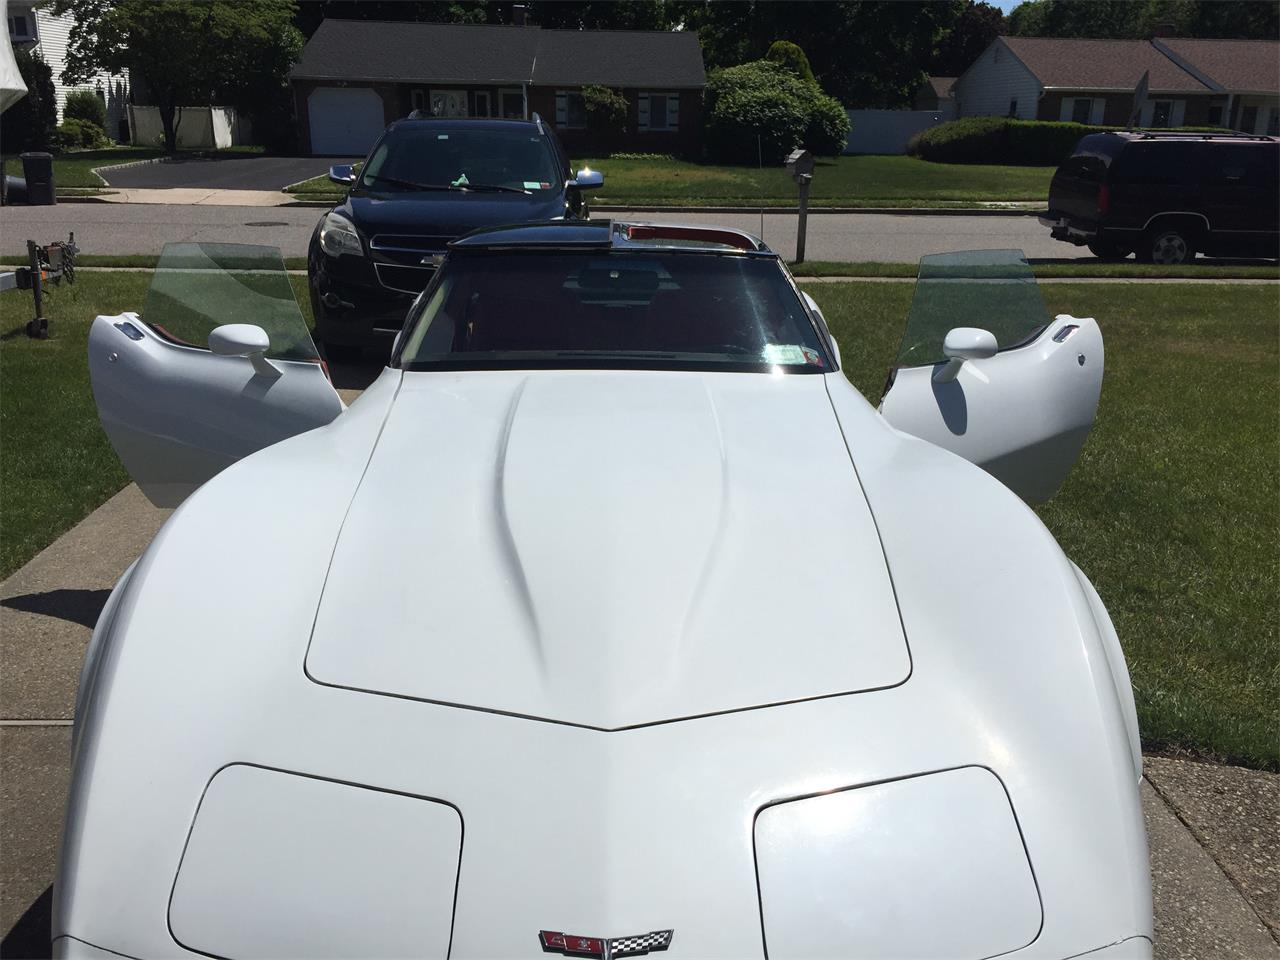 Large Picture of 1980 Corvette - $8,000.00 Offered by a Private Seller - QAJK